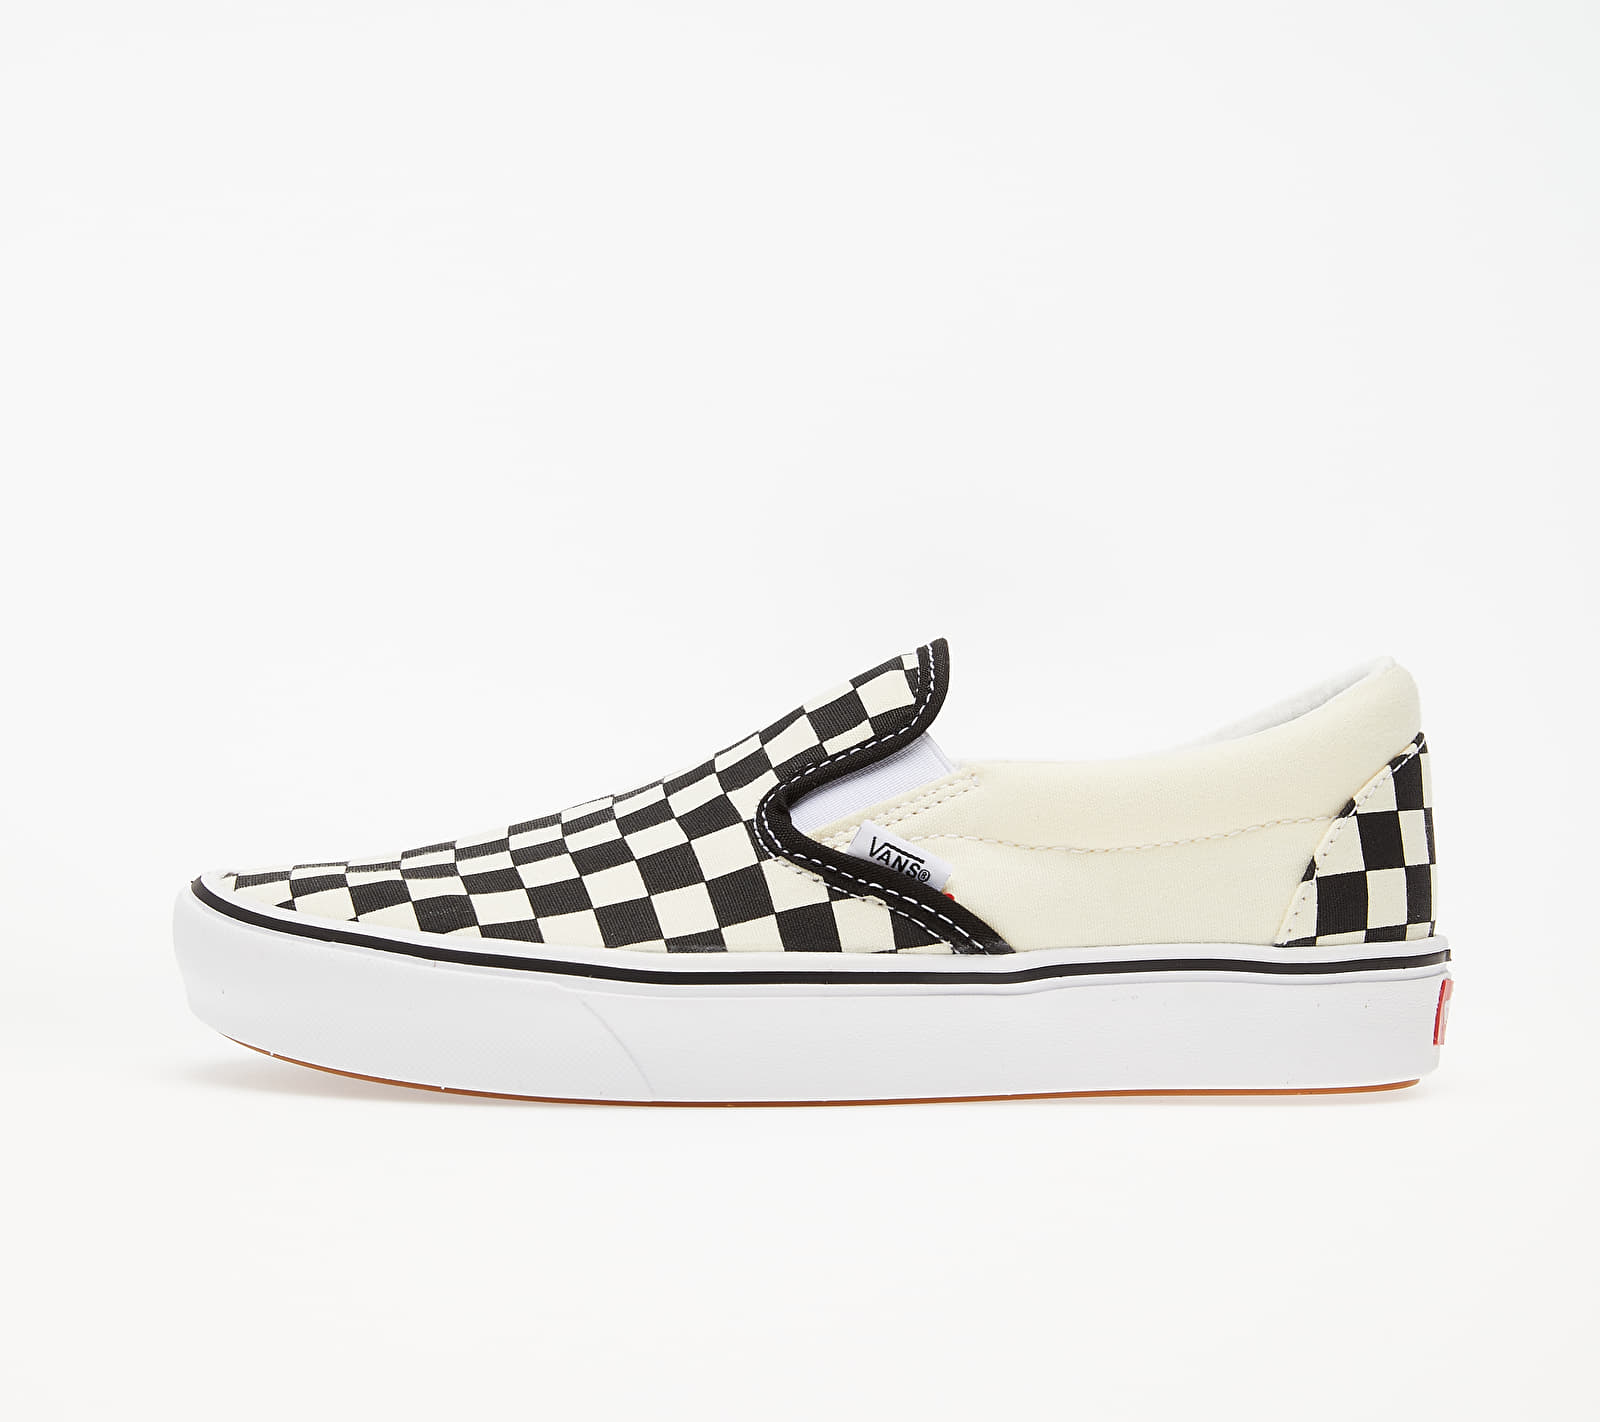 Vans ComfyCush Slip-On (Classic) Checkerboardard/ True White EUR 43